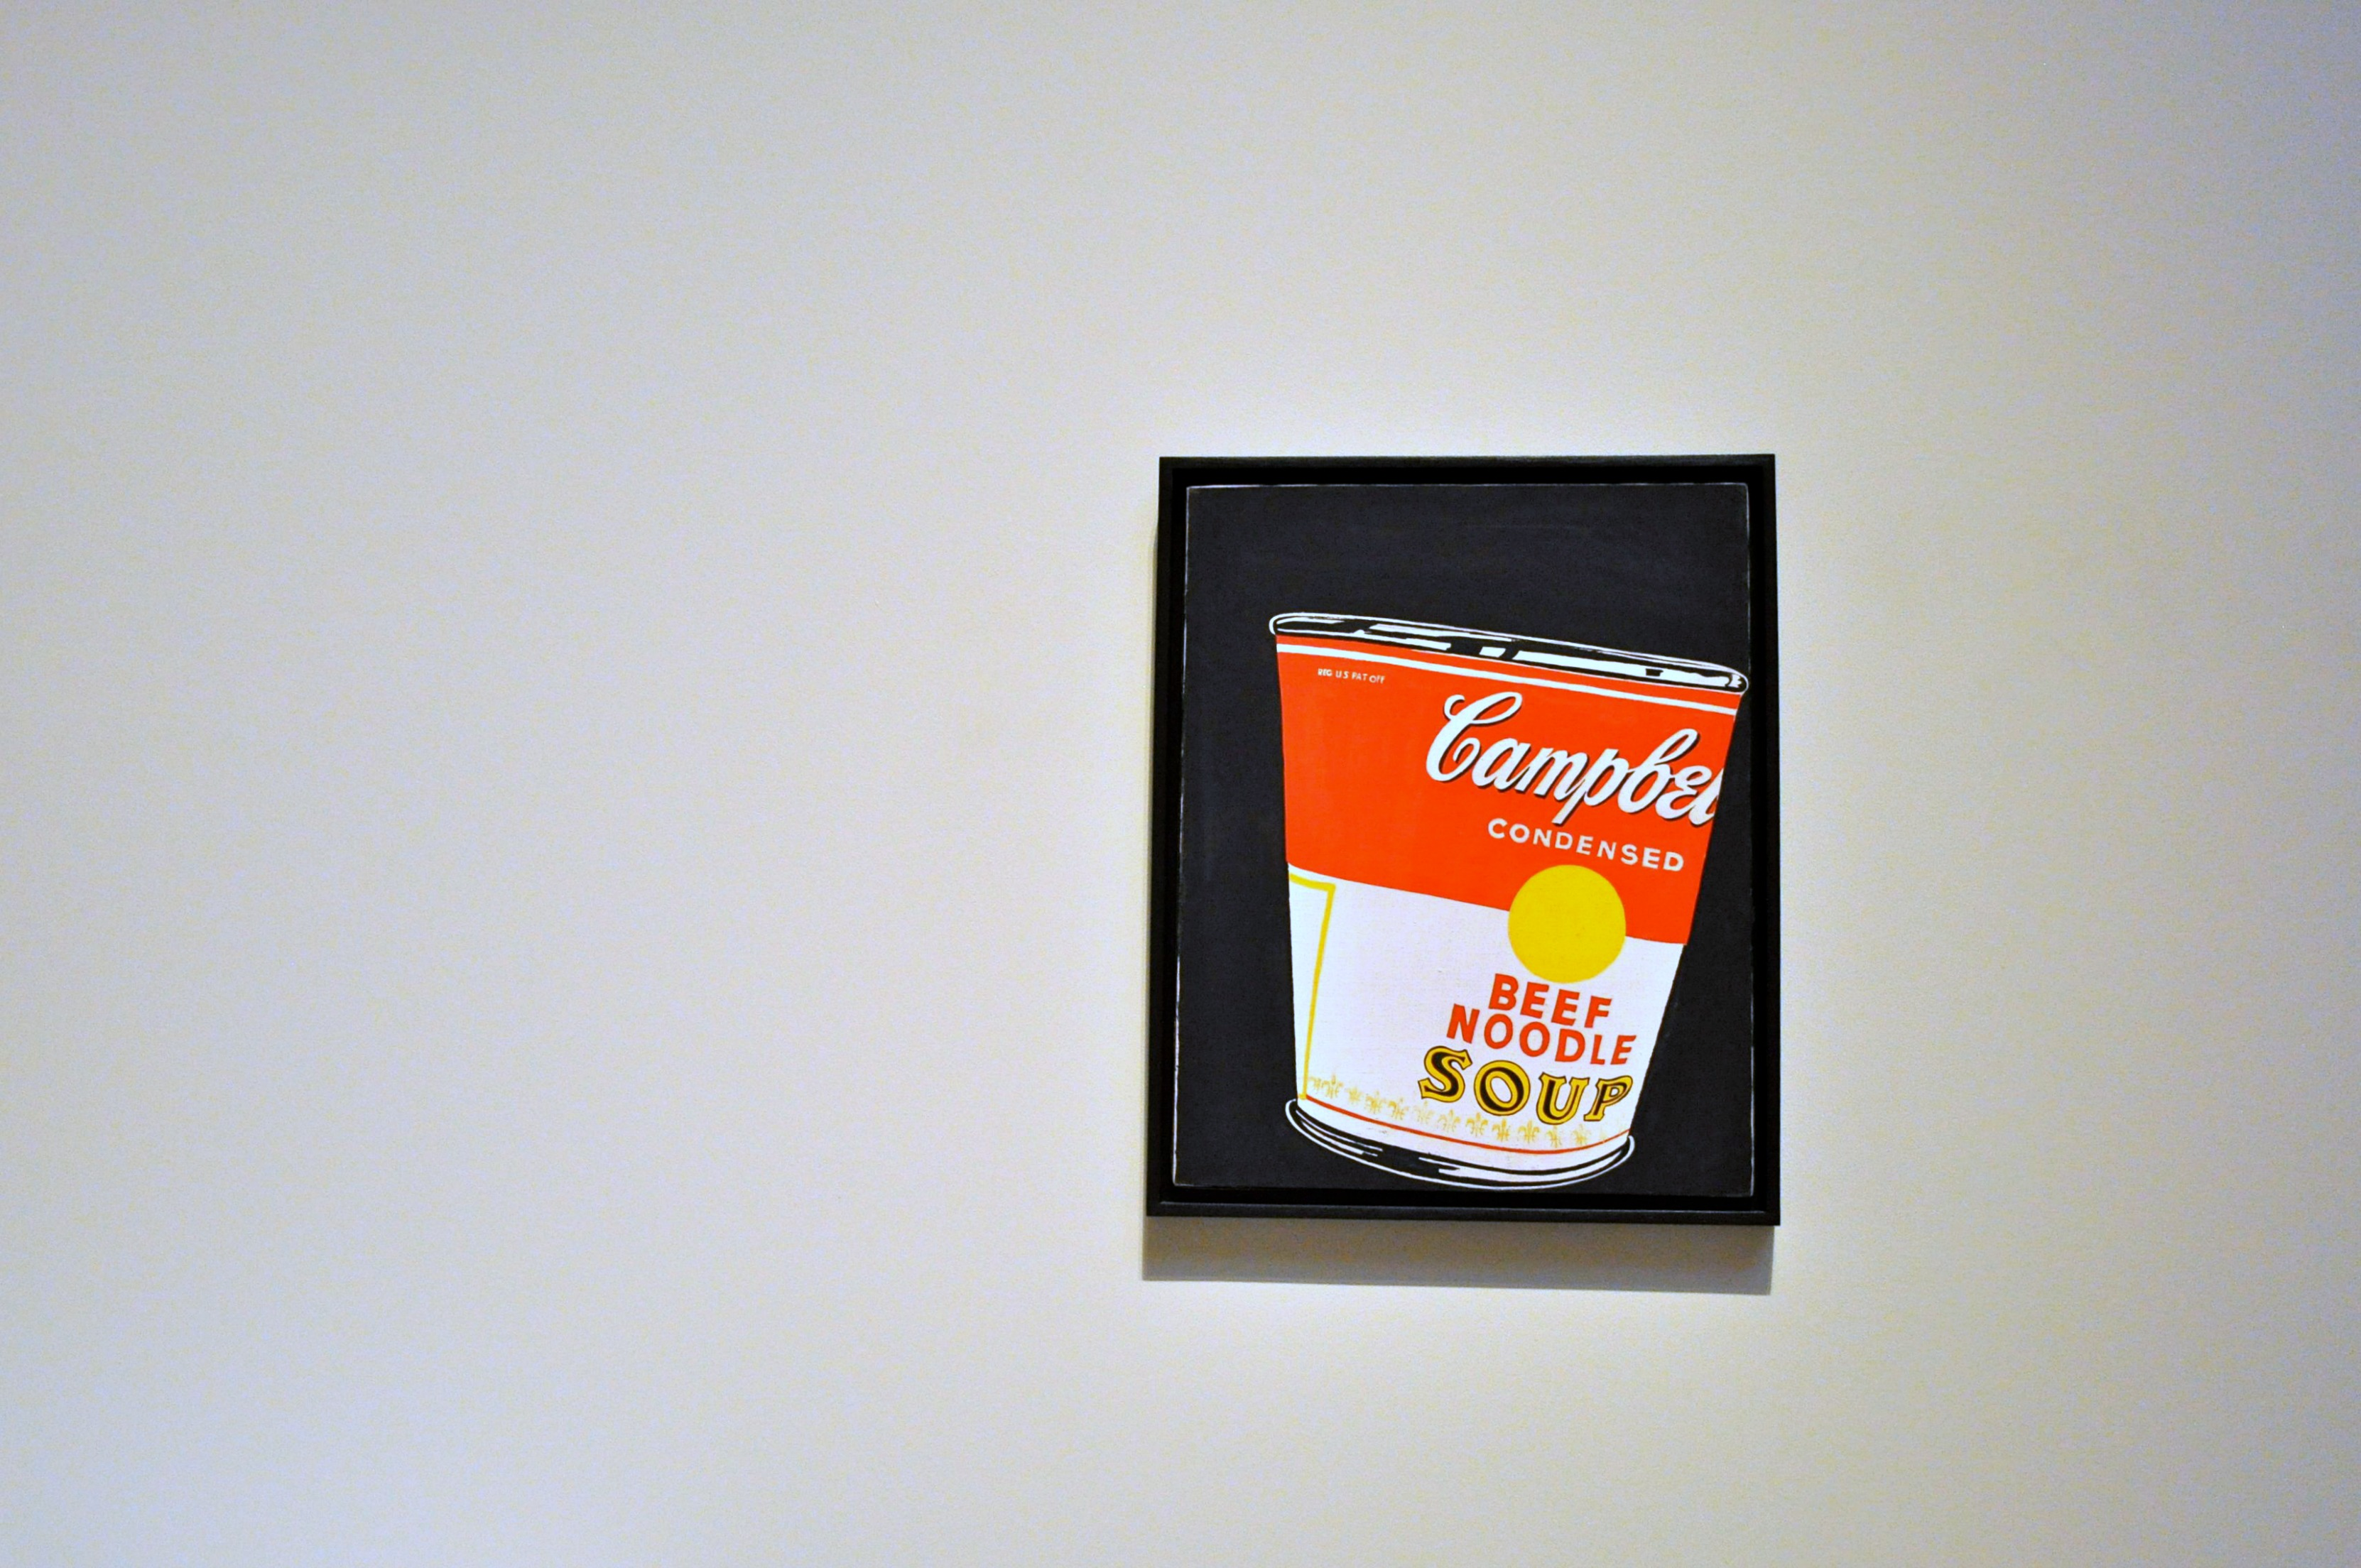 Andy Warhol Art – Crushed Campbell's Soup Can